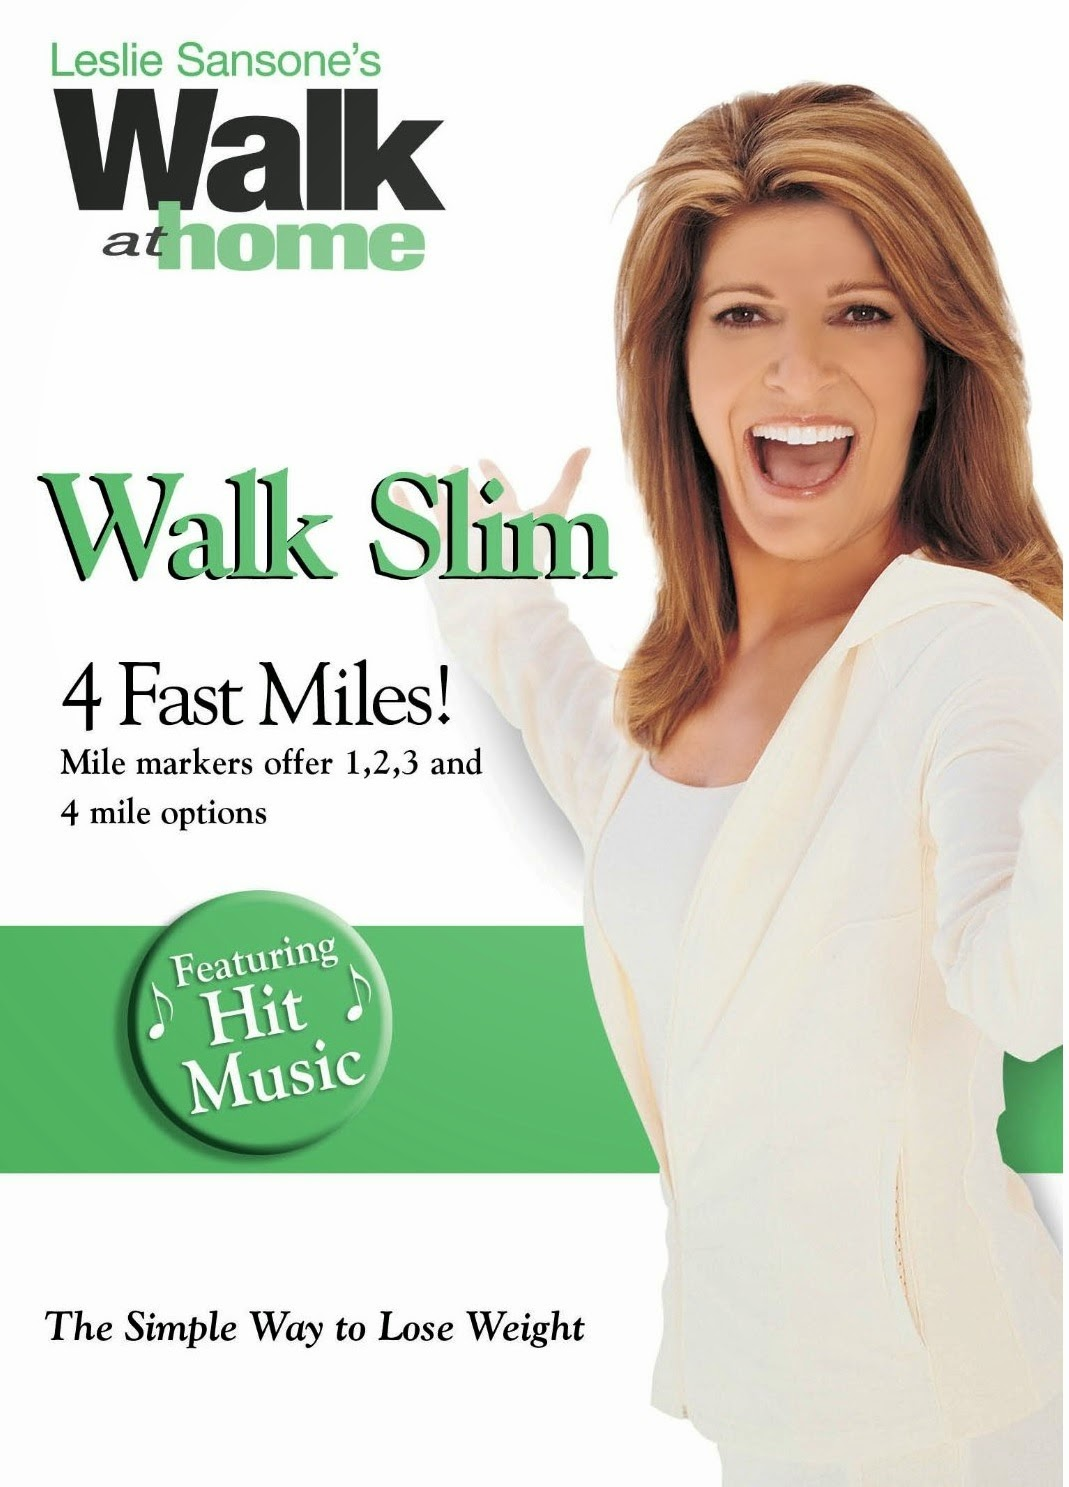 Nutrisystem with Leslie Sansone - Woman's Walk